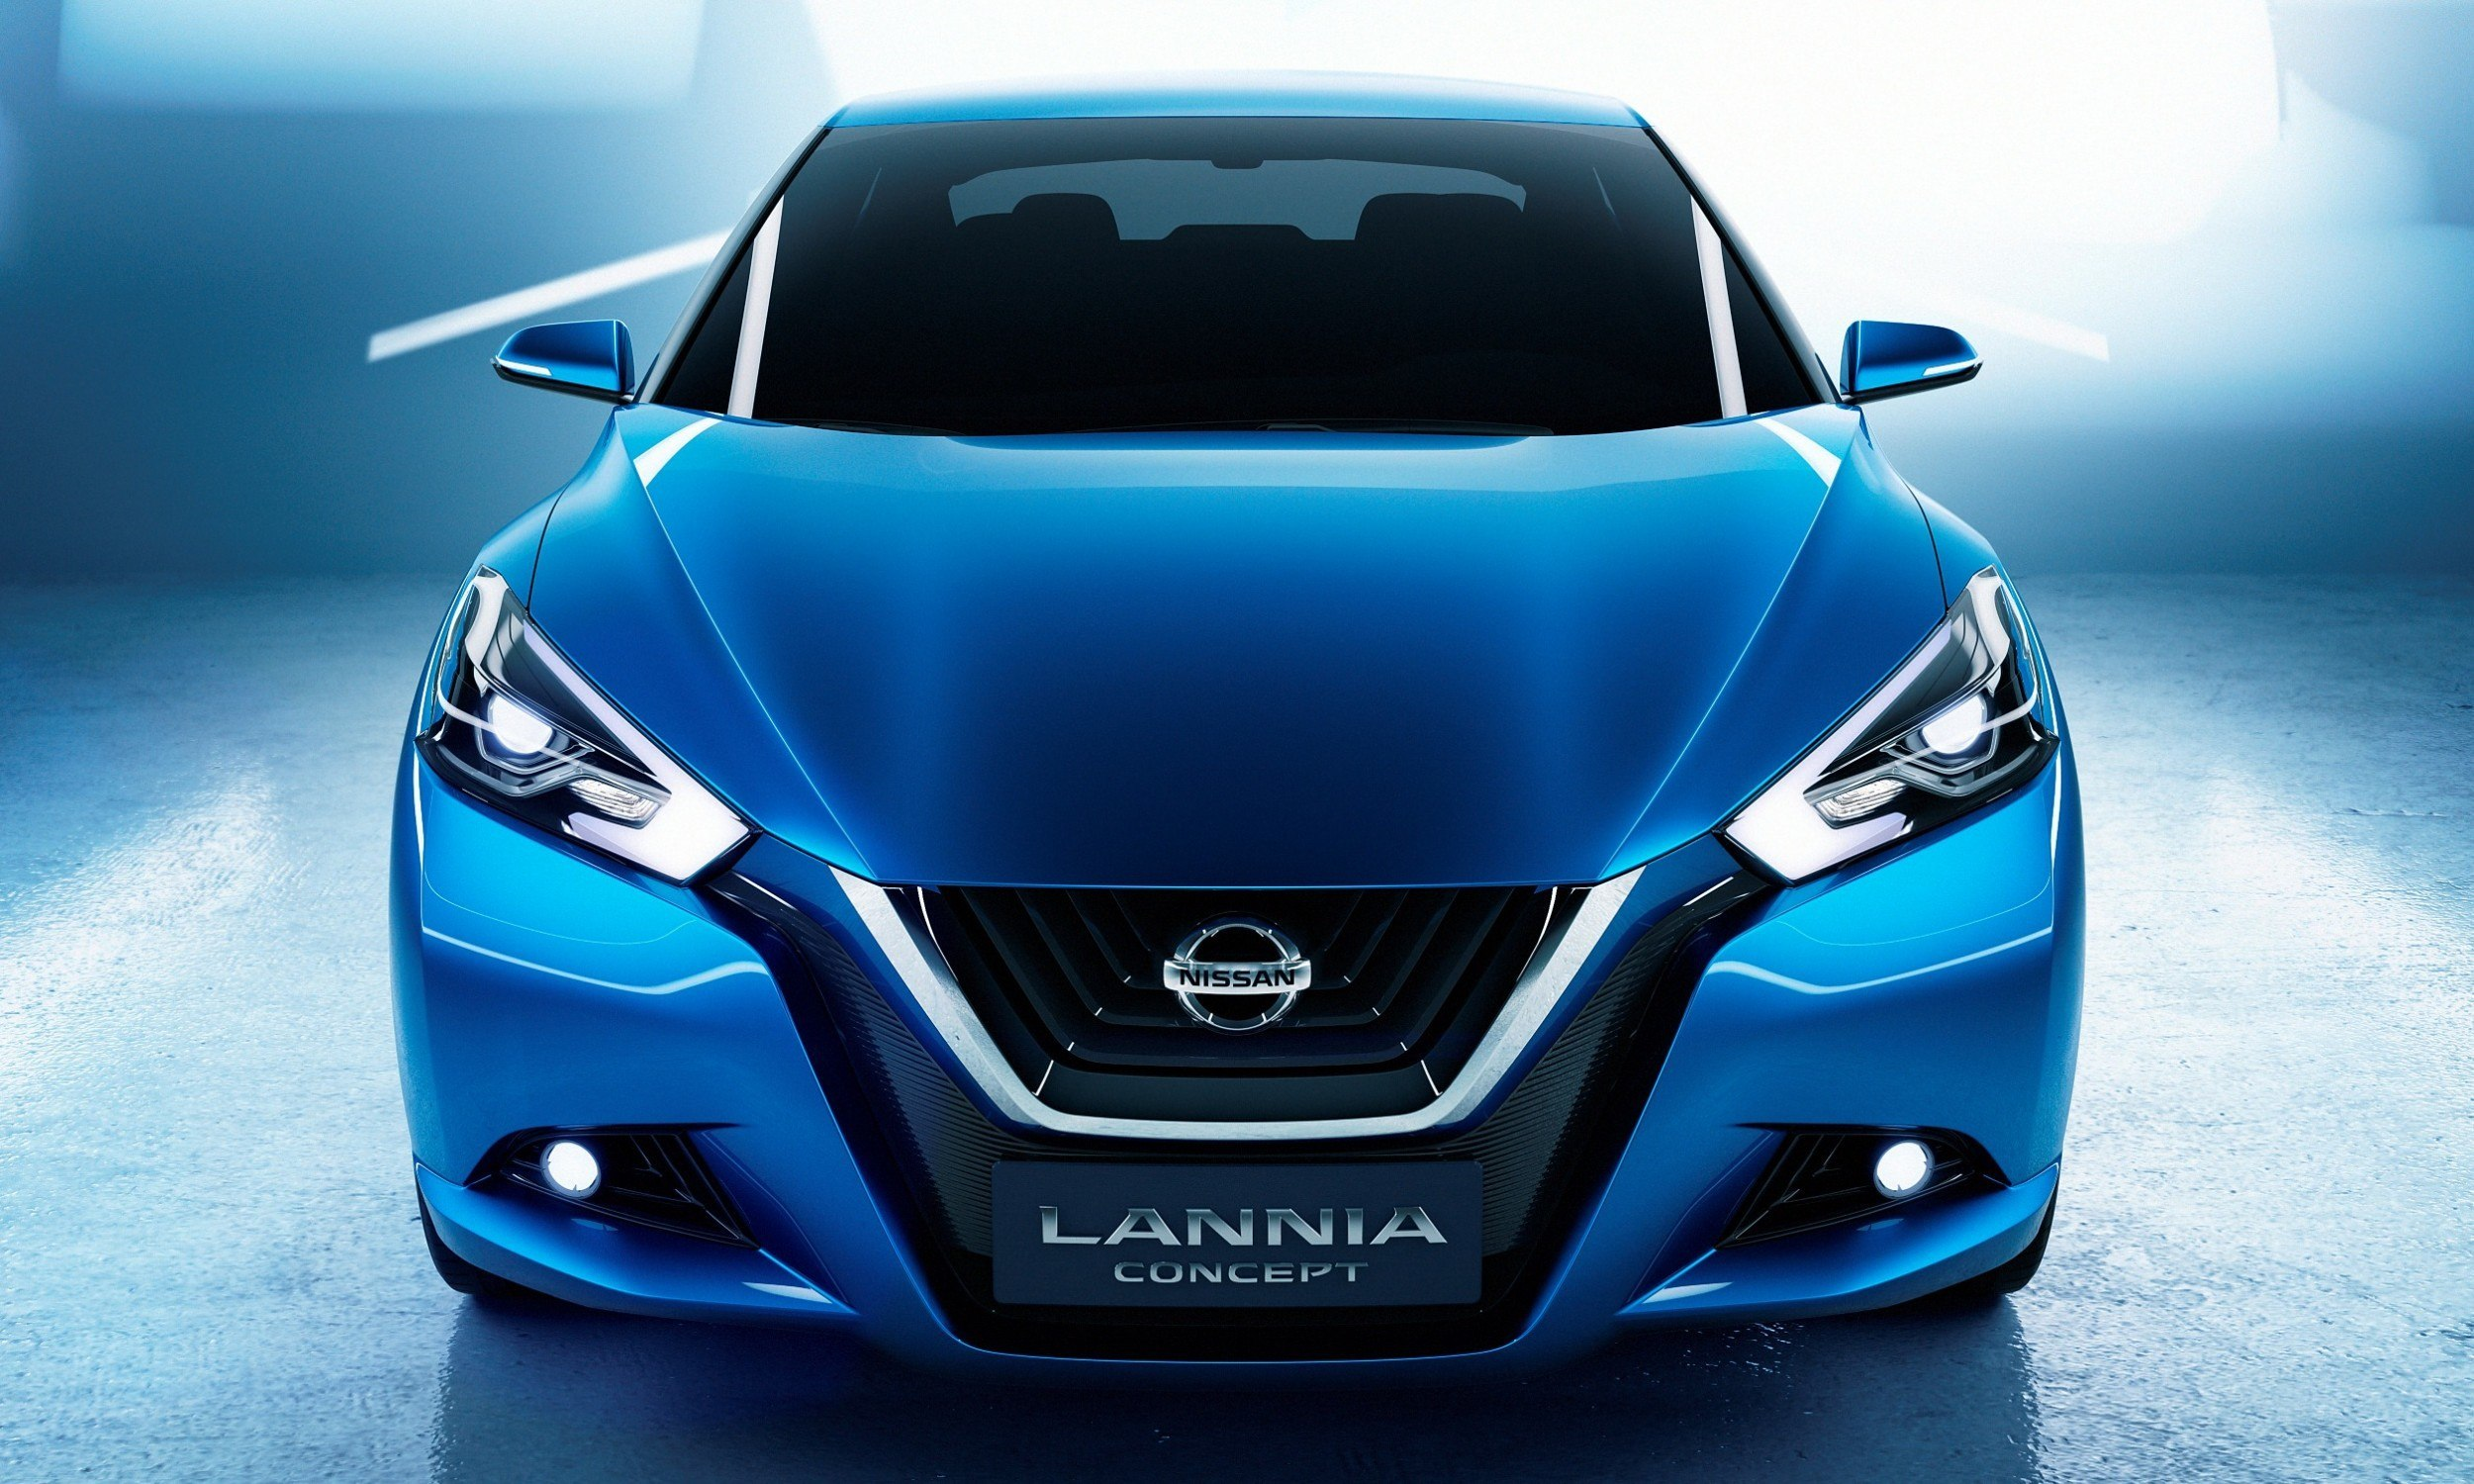 2014 Nissan Lannia Concept Previews Next Leaf EV